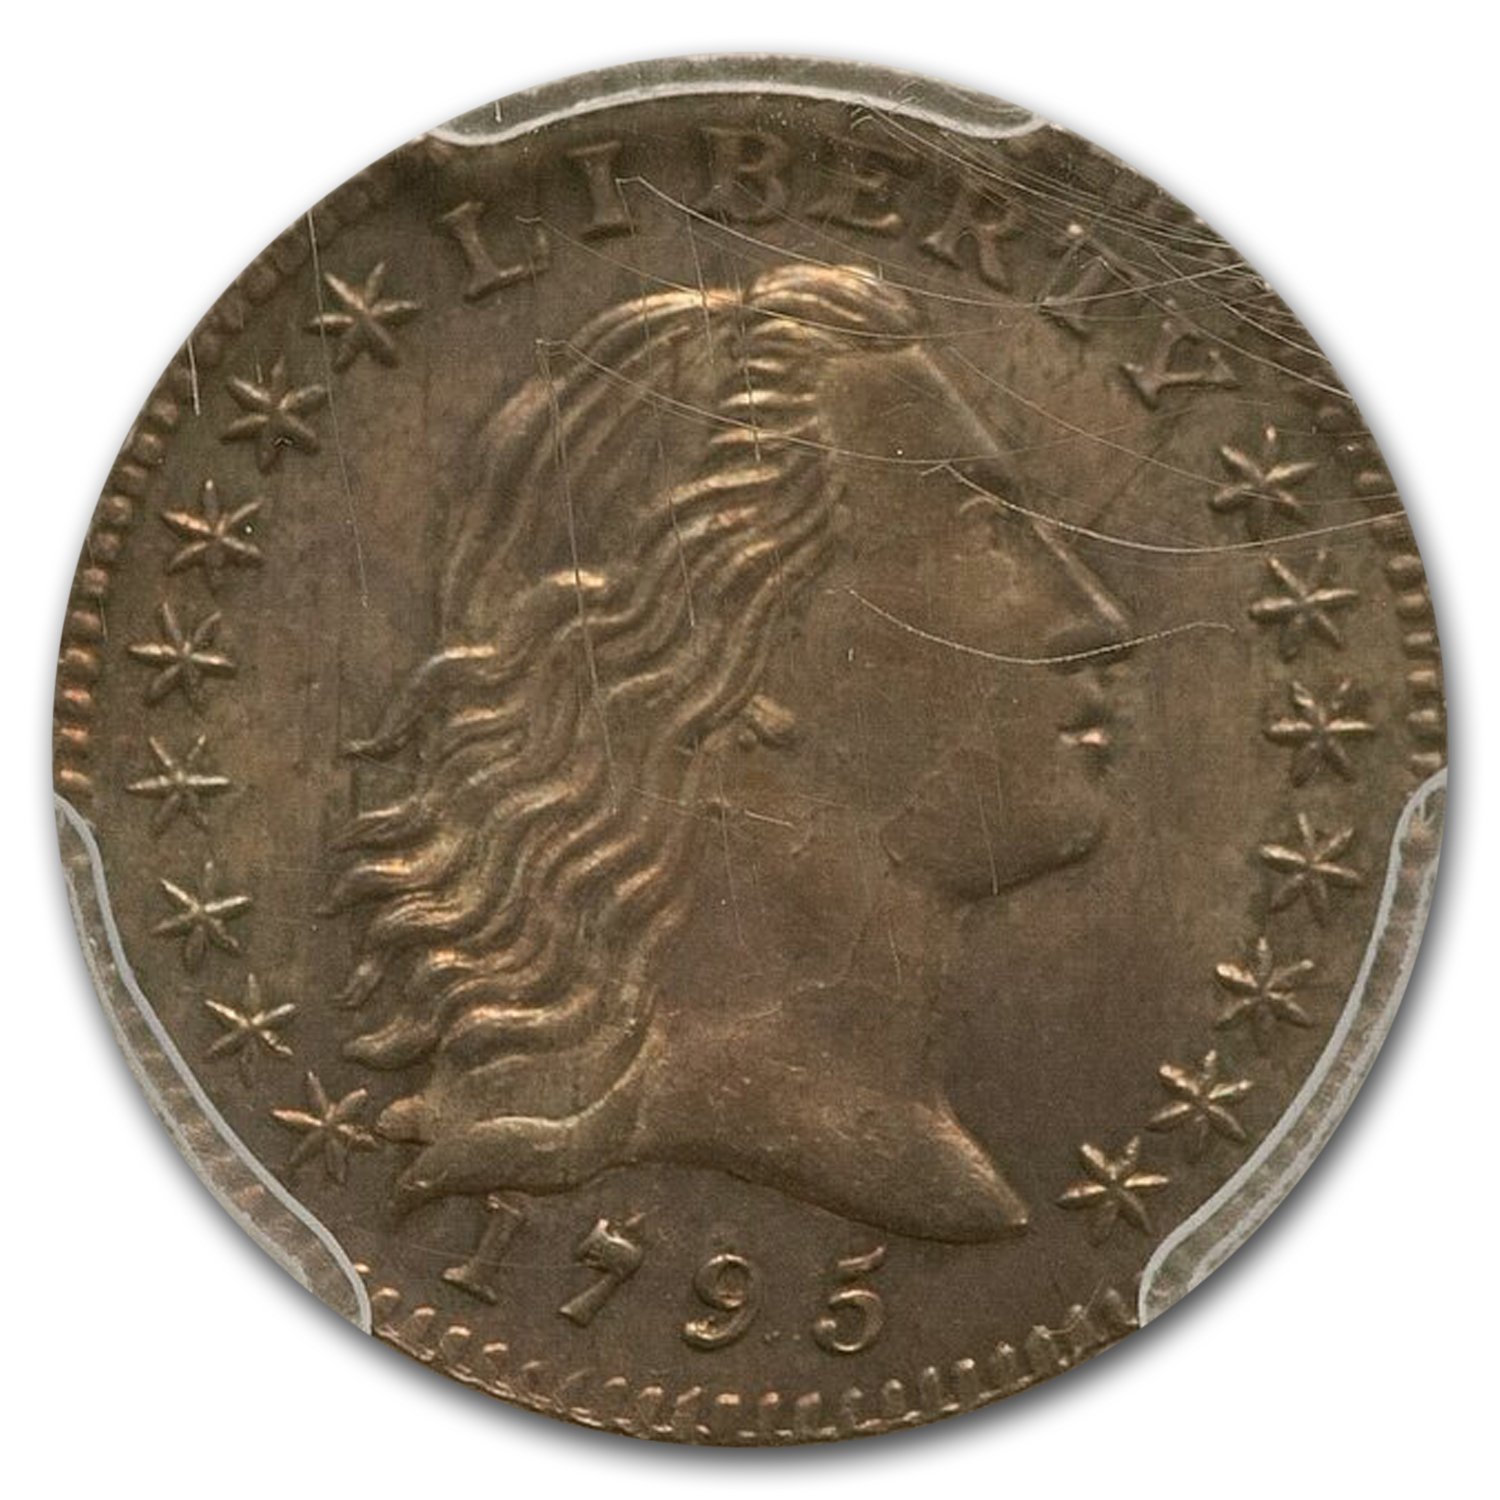 1795 Flowing Hair Half Dime V-4, MS-65 PCGS